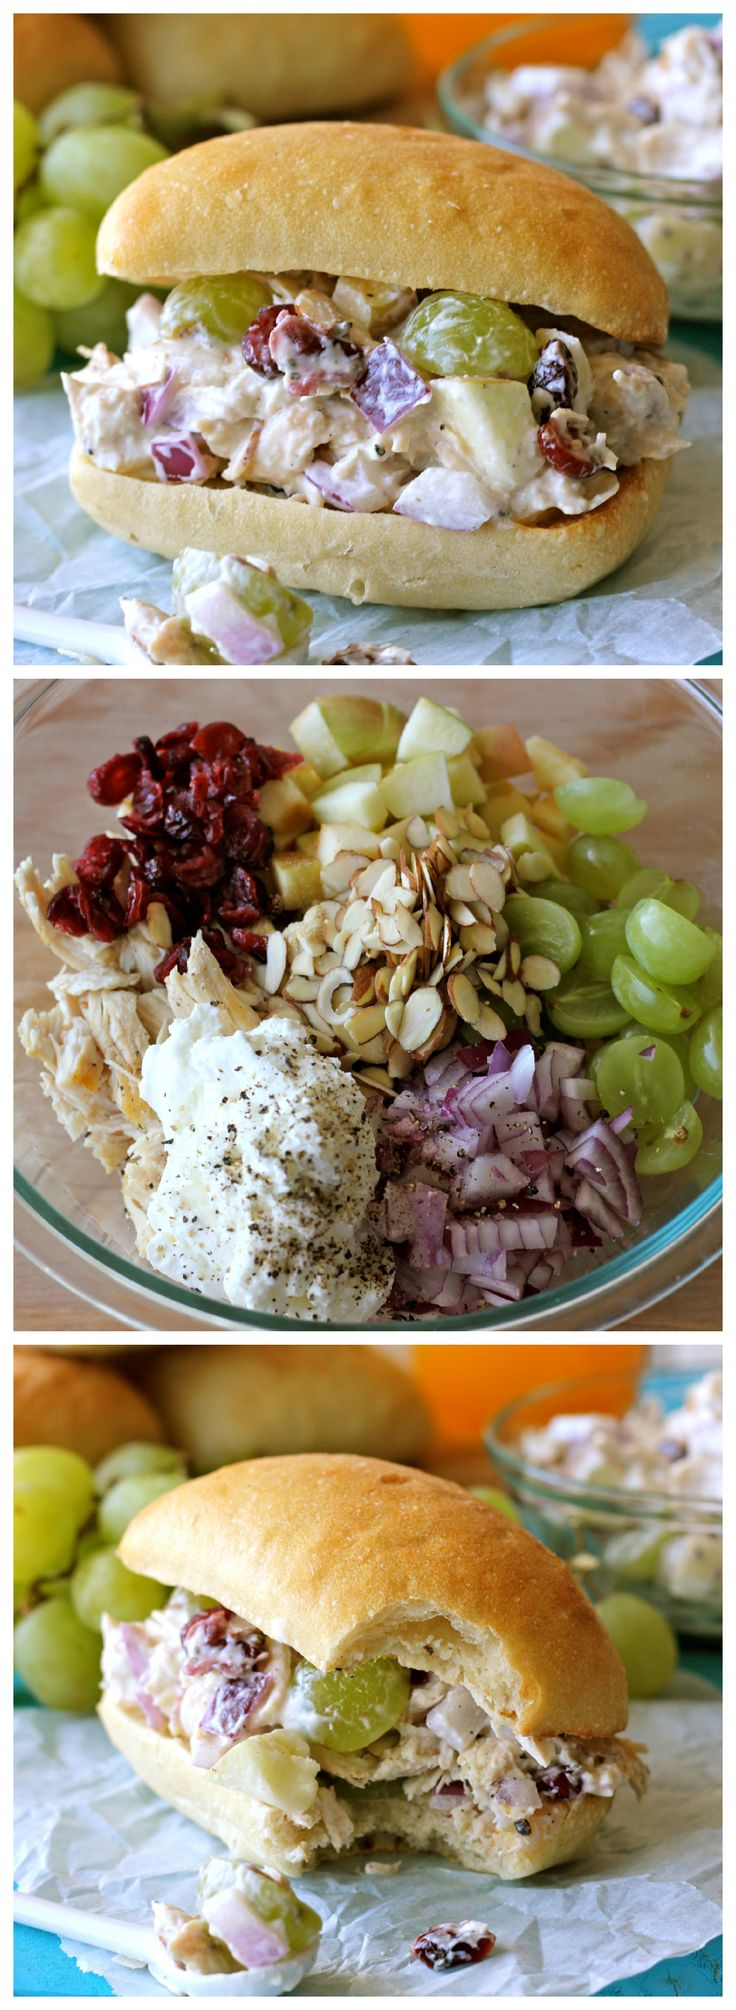 This healthy version of chicken salad is really delicious.